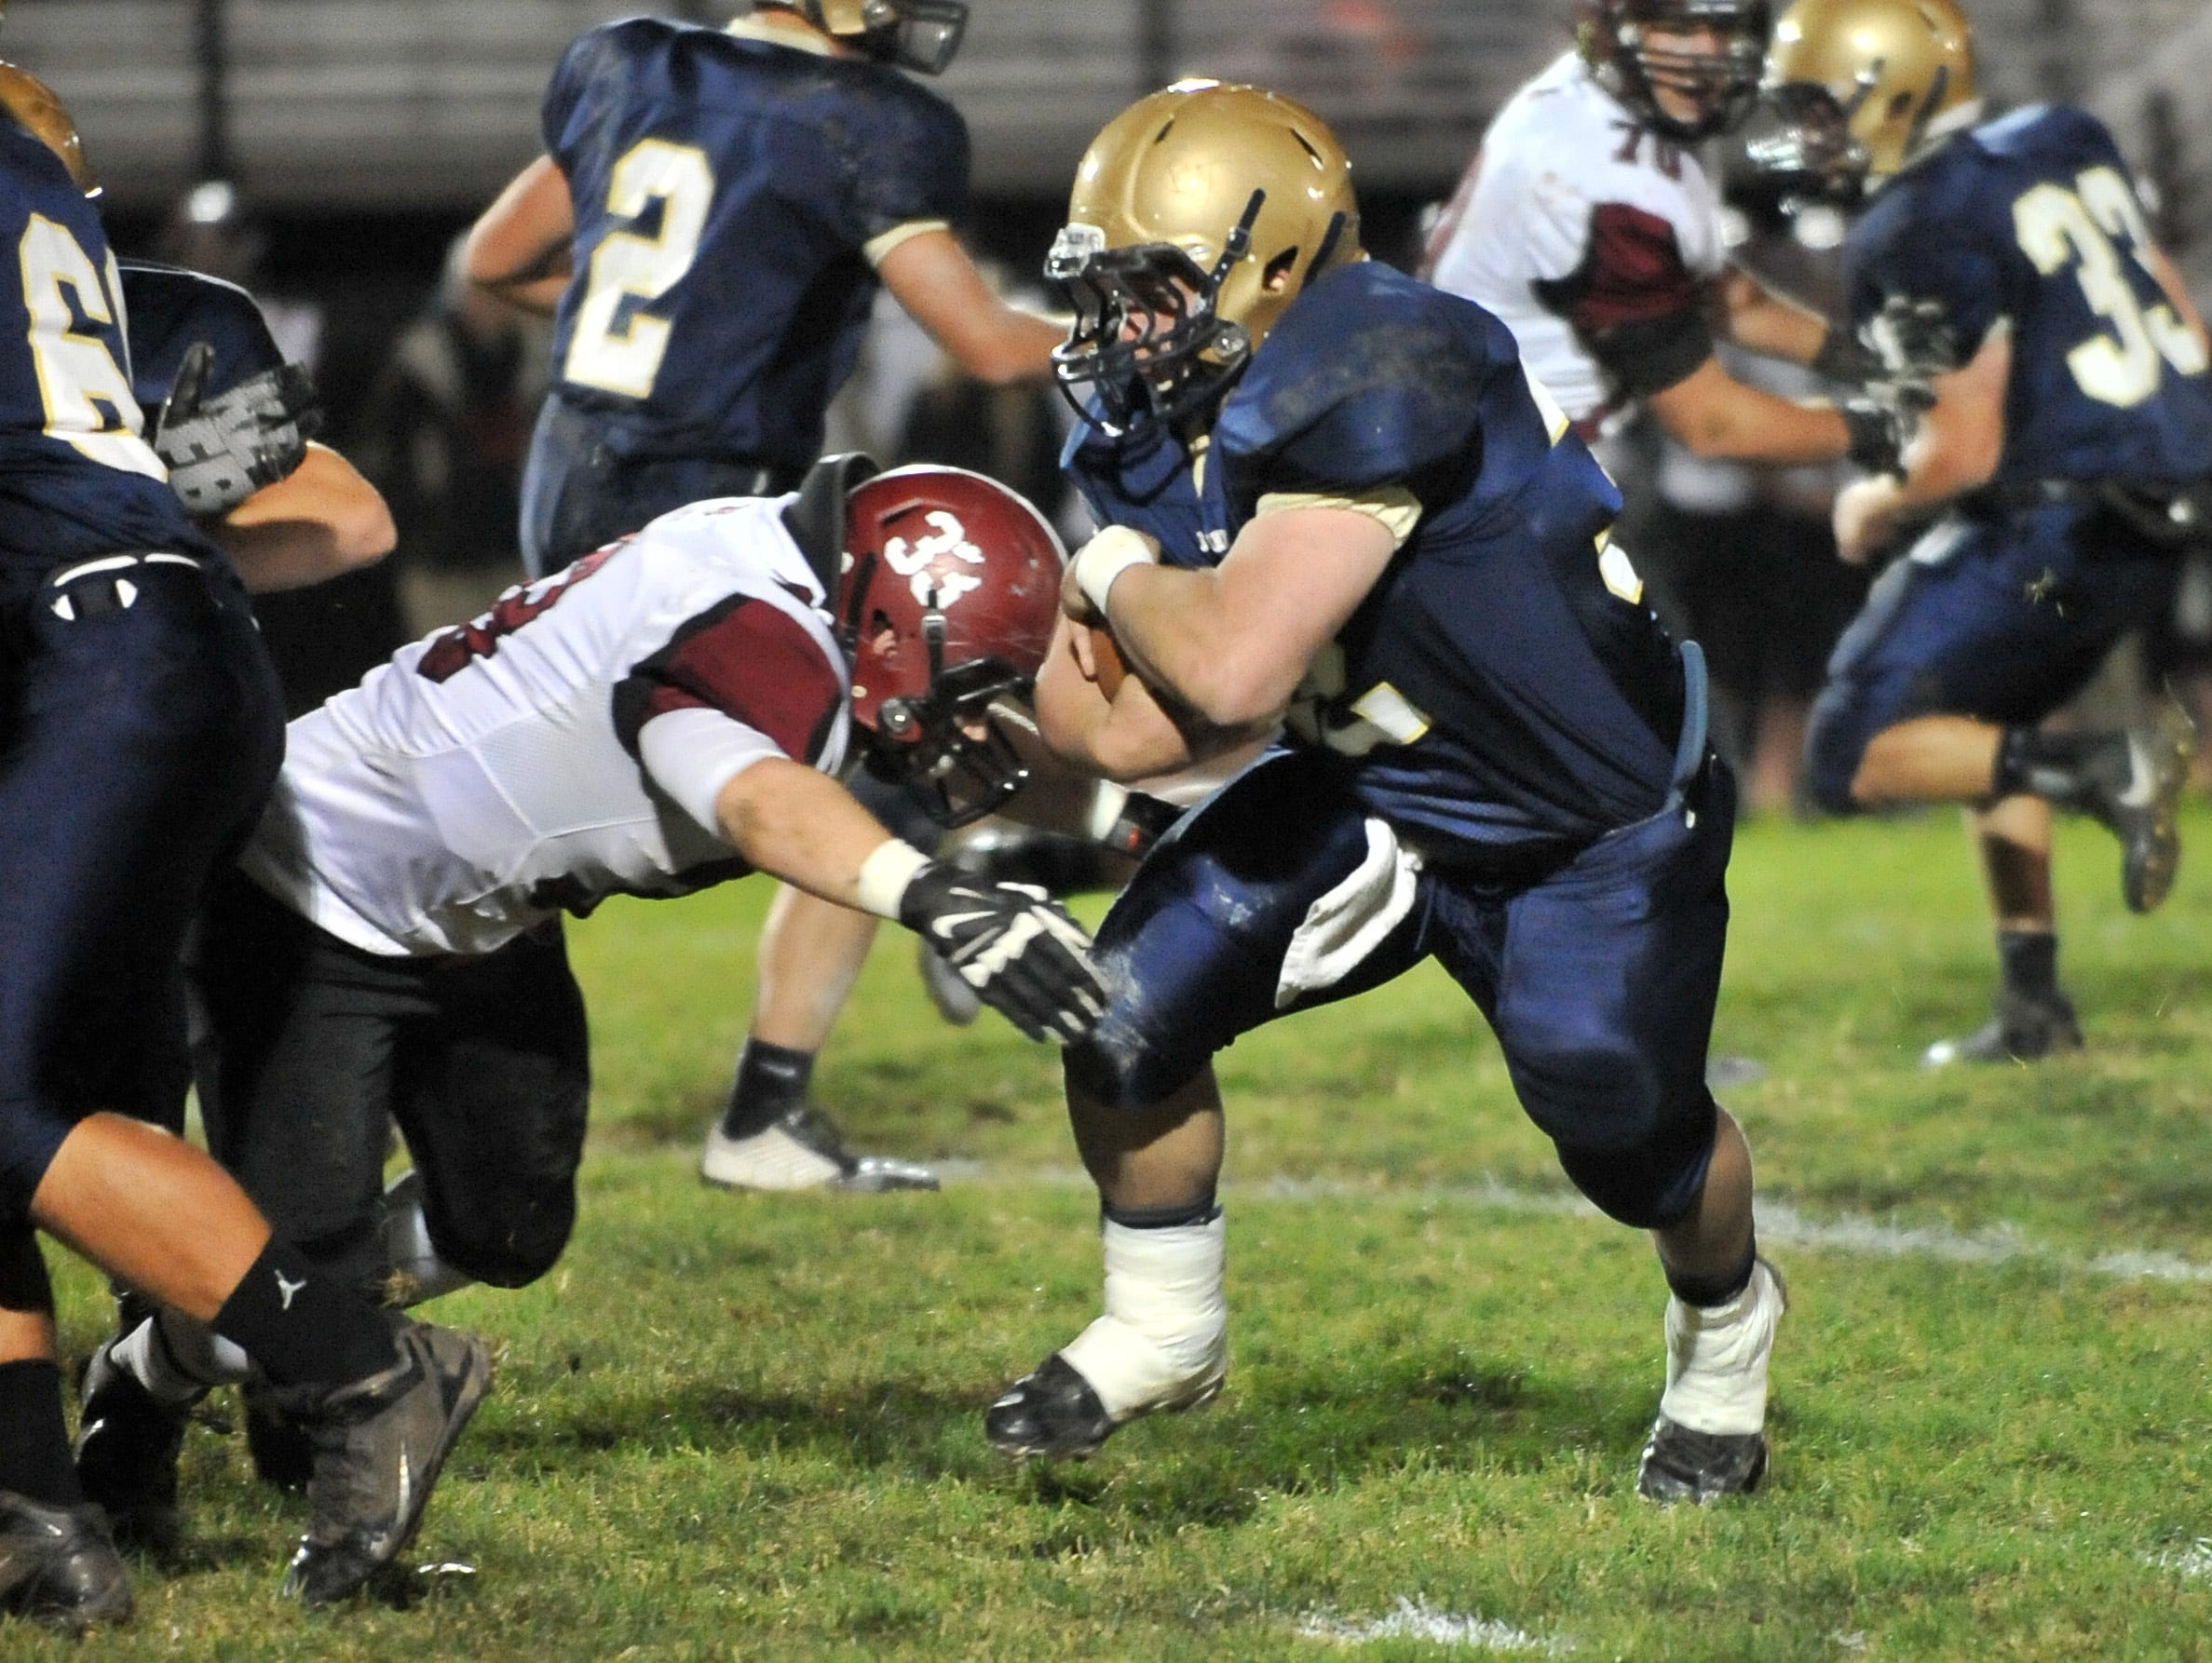 Lancaster's Ryan Fitchpatrick runs the ball during the Golden Gales 38-7 win over Newark Friday night at Fulton Field in Lancaster.